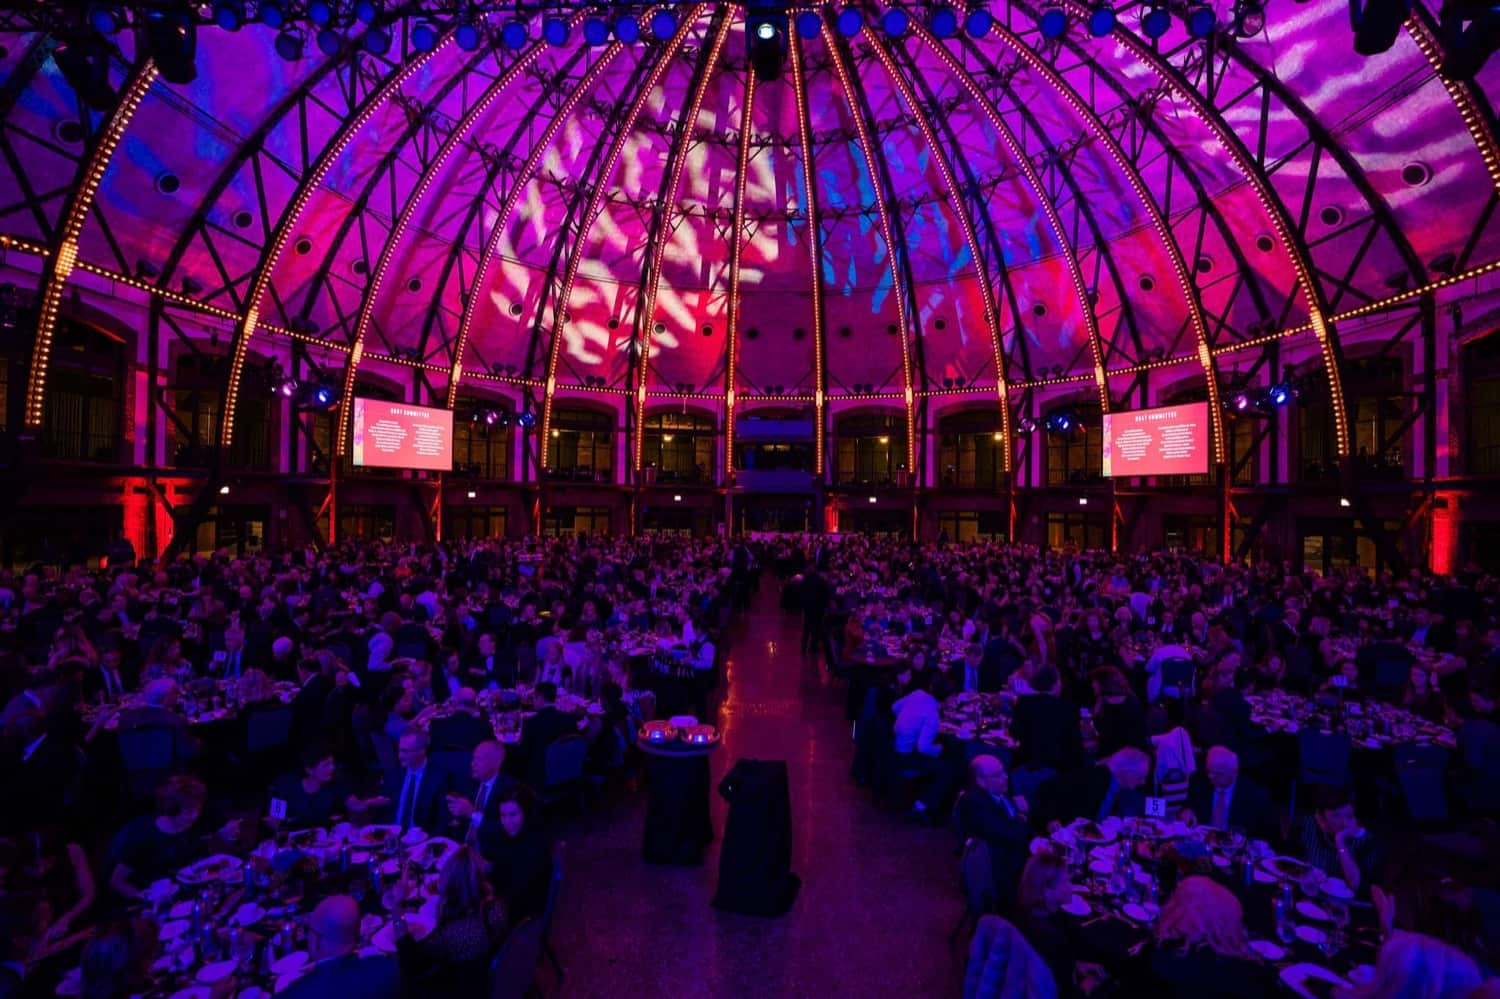 - JT can provide event logistics which includes creative venue selection and management; staffing; registration; program and stage development; and video production and distribution.